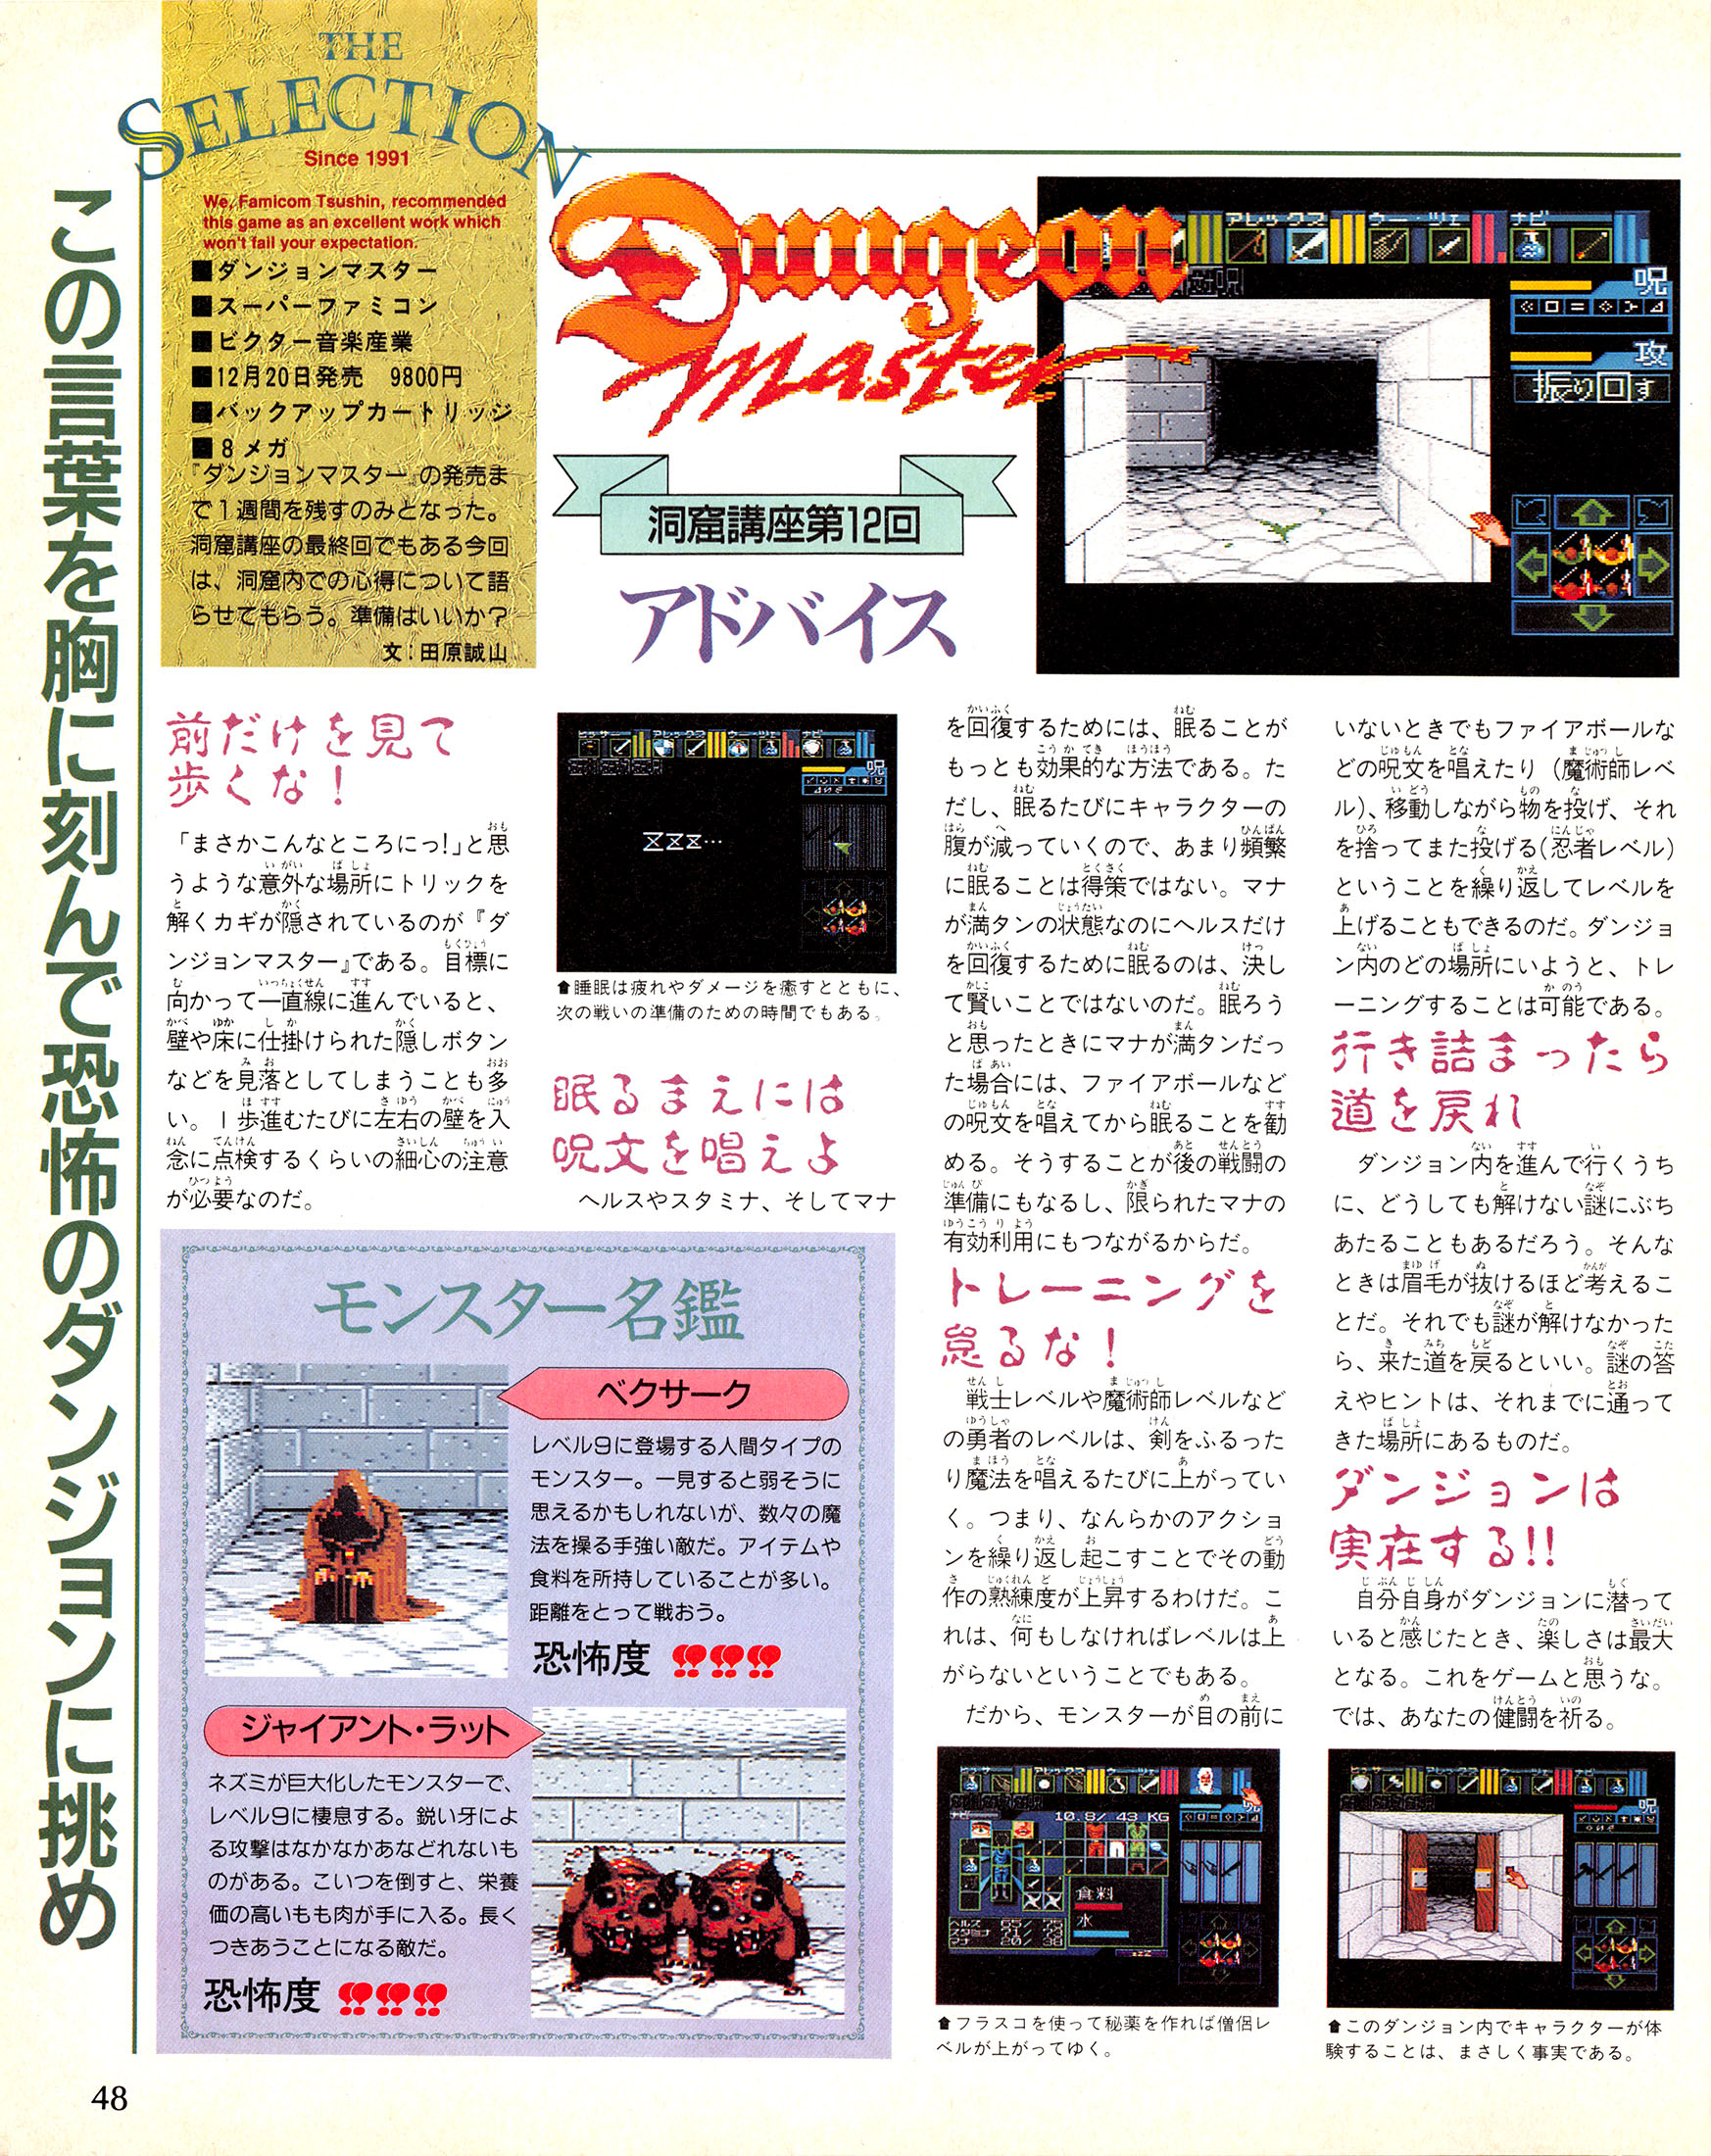 Dungeon Master for Super Famicom Article published in Japanese magazine 'Famitsu', Issue #158 28 December 1991, Page 48